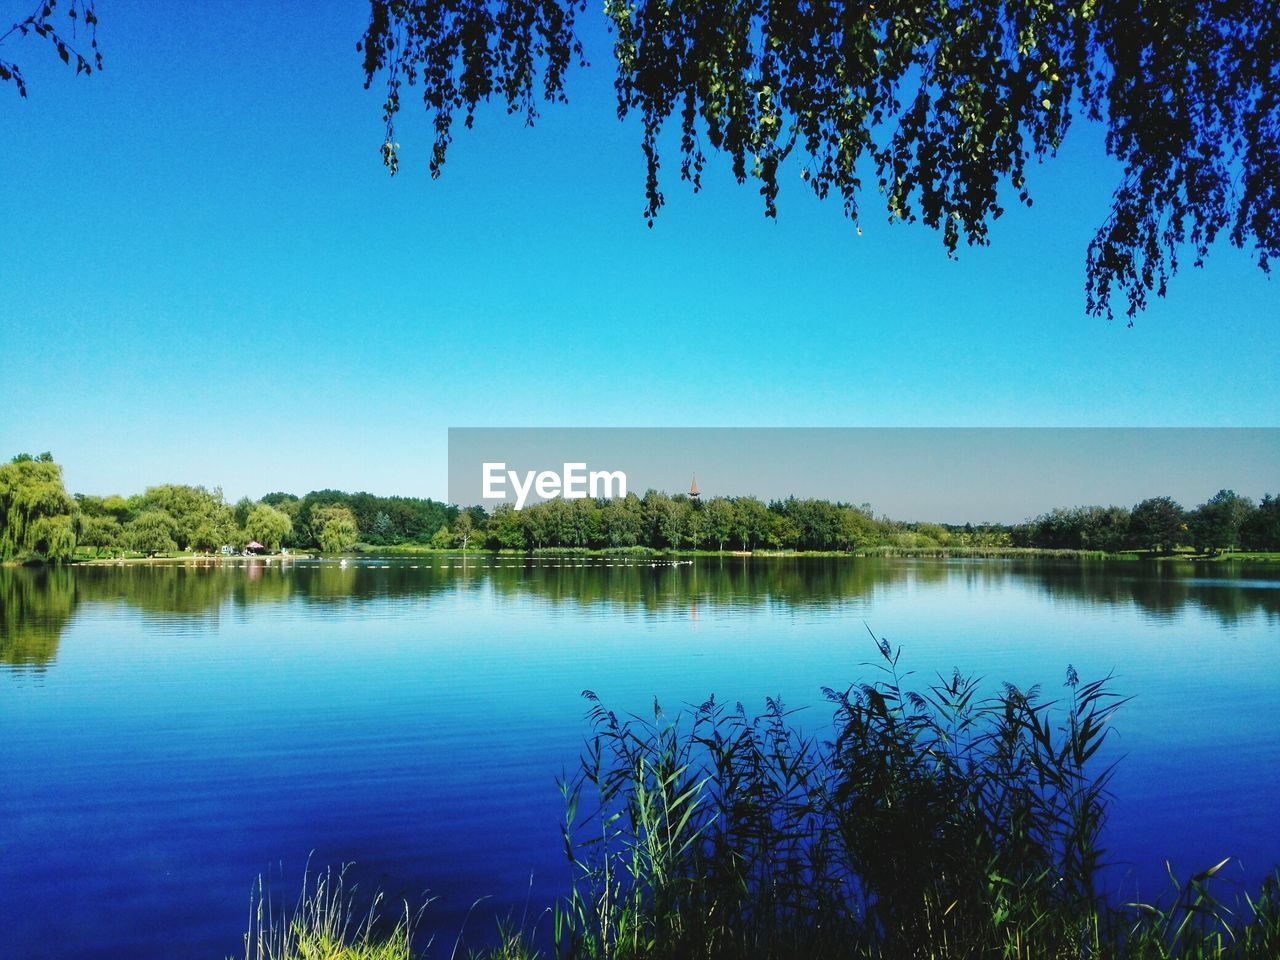 water, tree, reflection, blue, lake, nature, beauty in nature, tranquility, tranquil scene, clear sky, outdoors, growth, scenics, no people, day, plant, sky